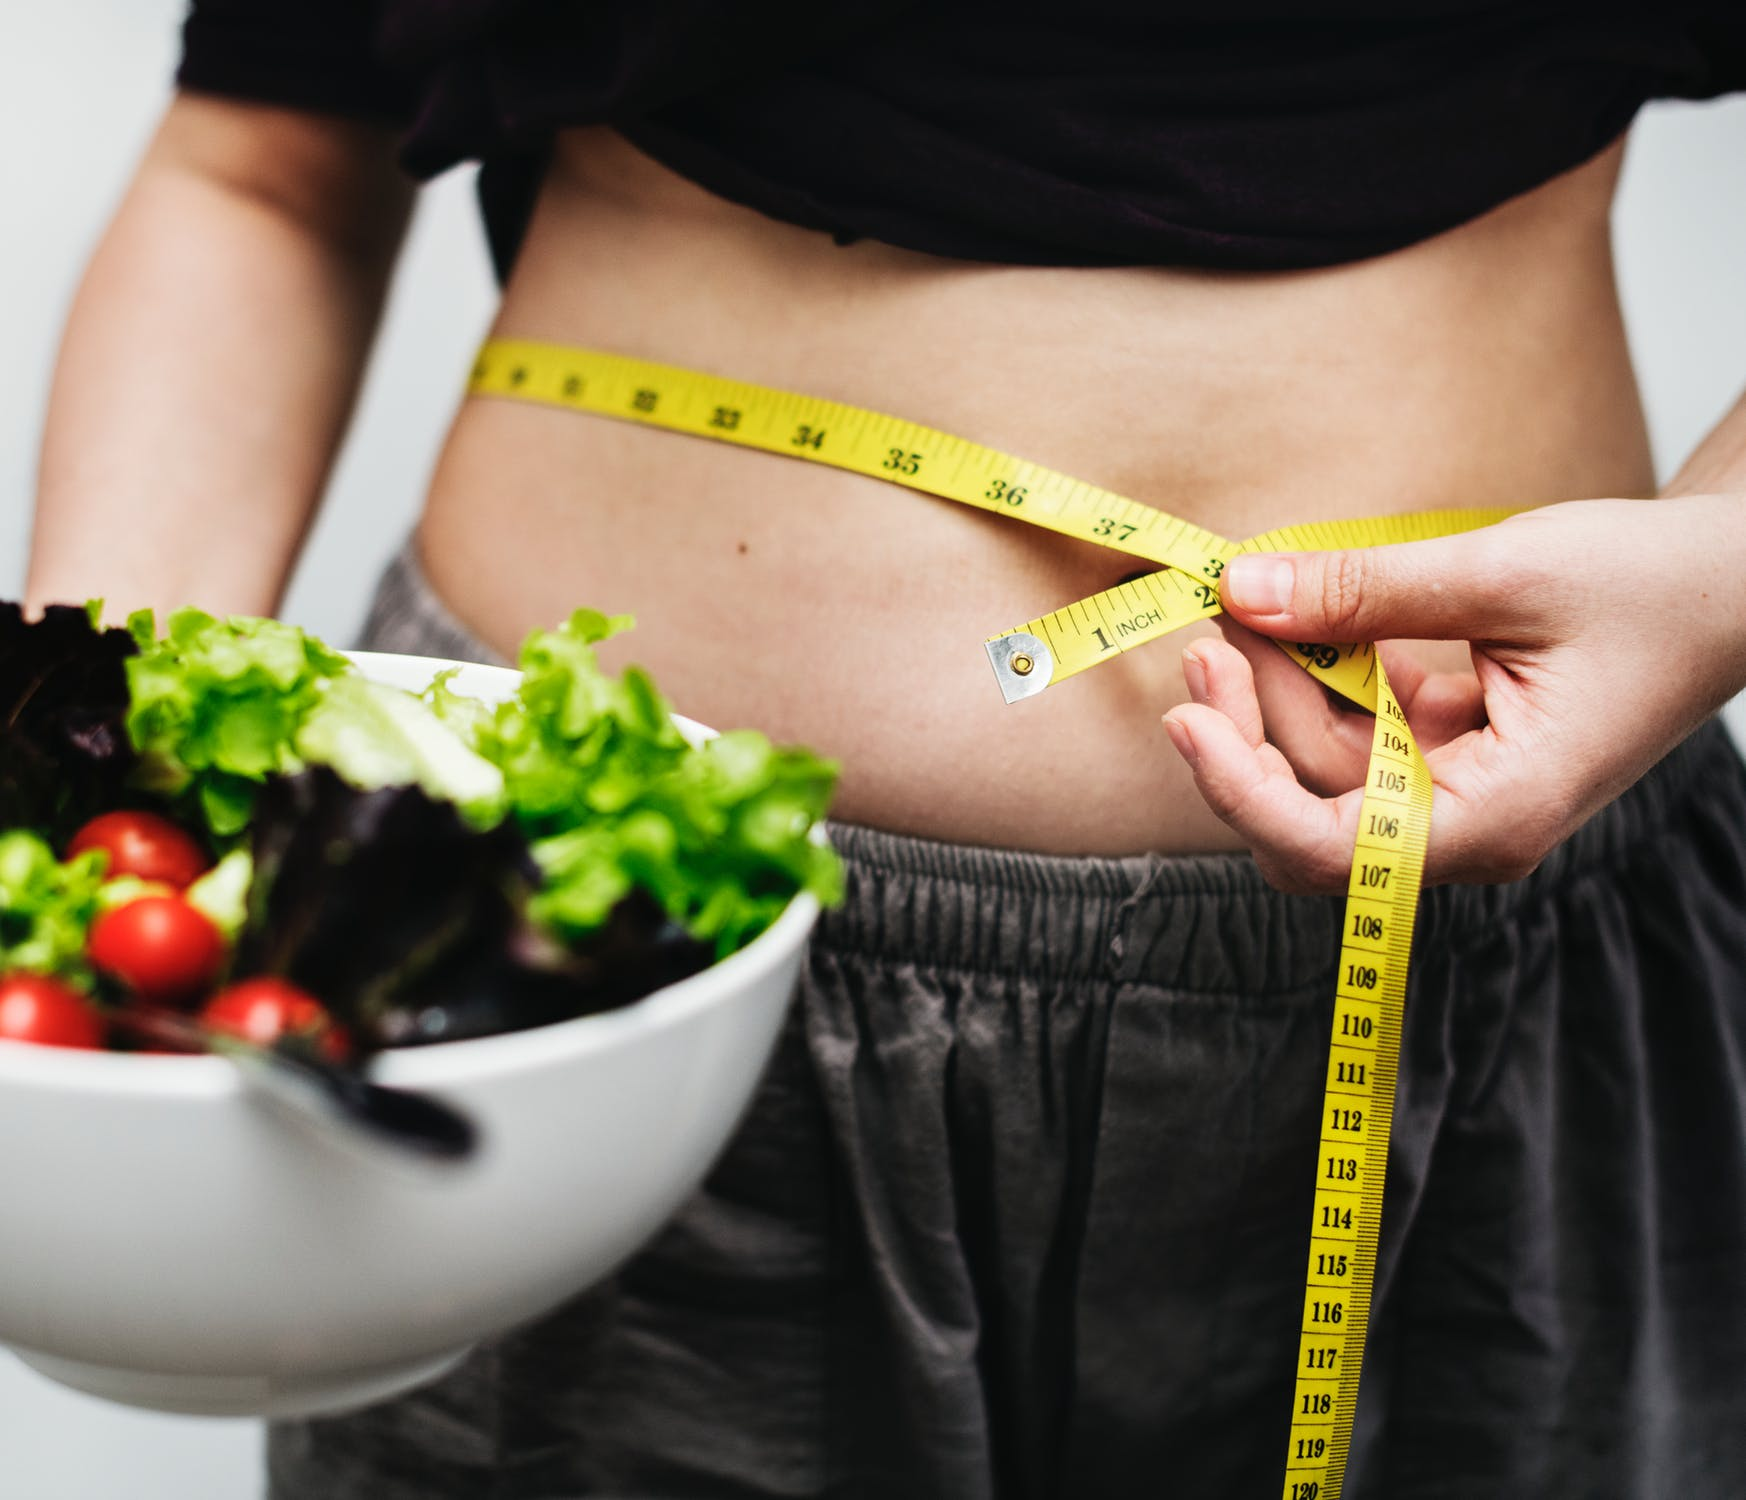 Is Eating One Meal a Day a Safe Way to Lose Weight?